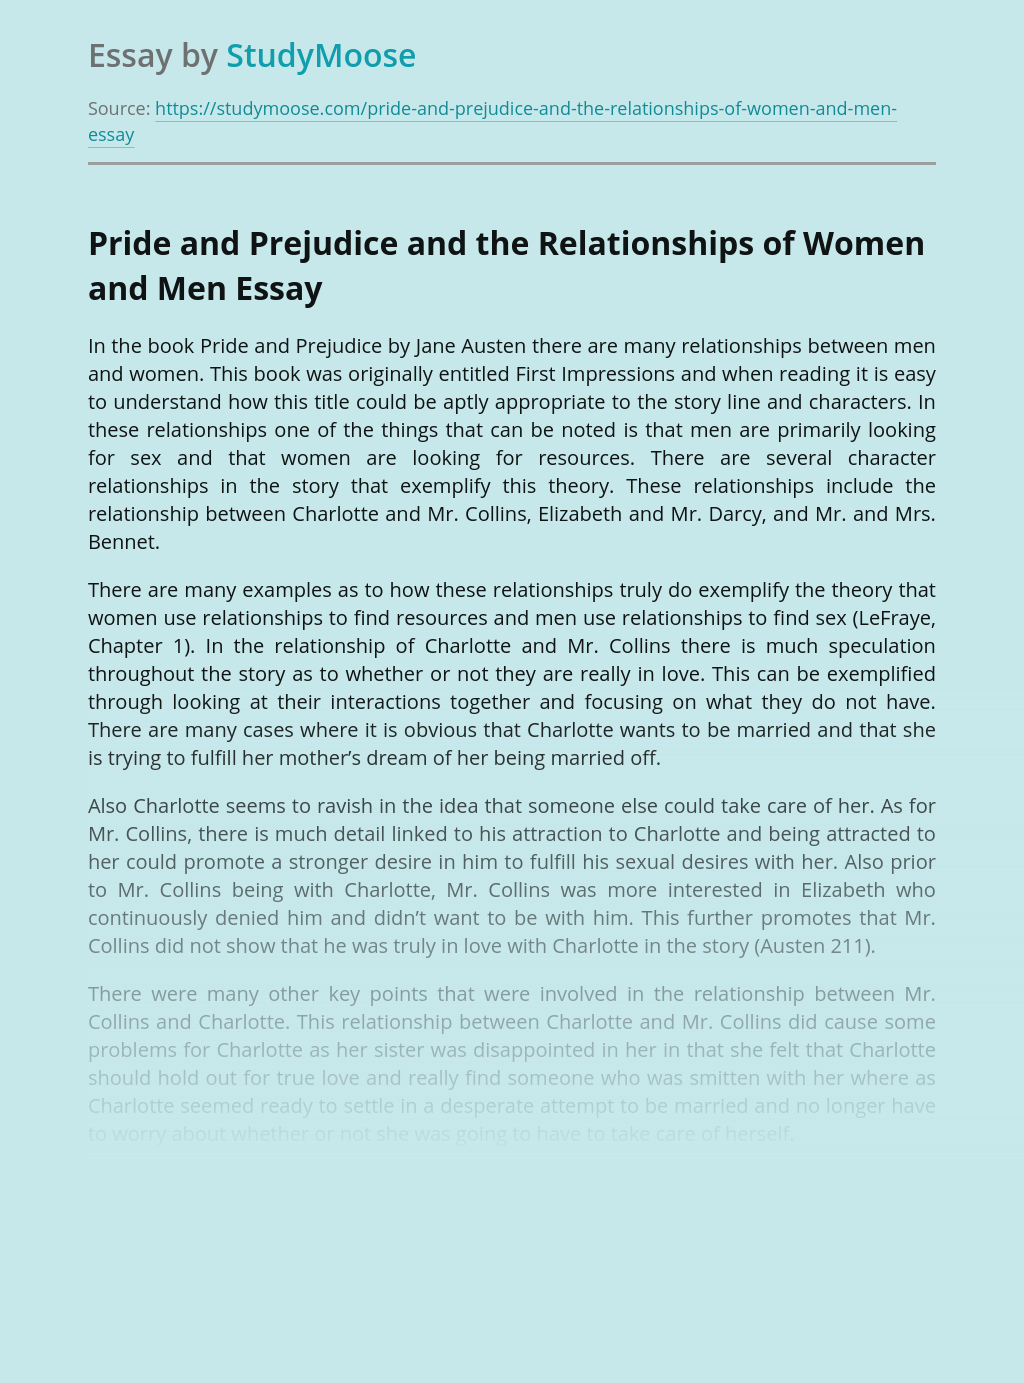 Pride and Prejudice and the Relationships of Women and Men